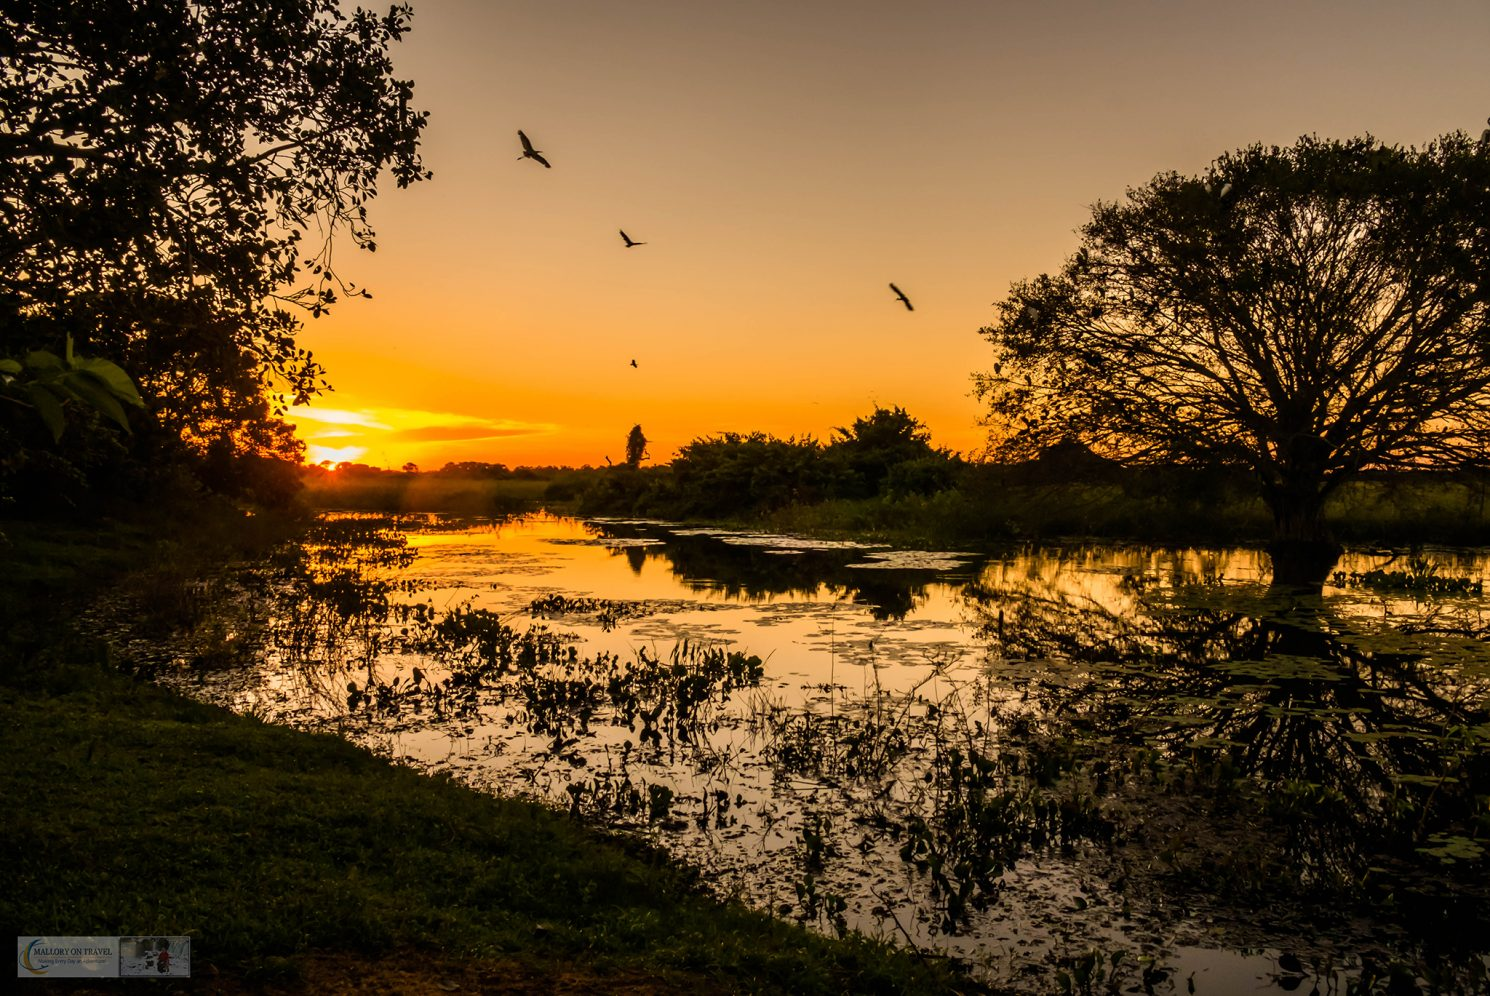 Sunset in the Pantanal at the roosting tree at Araras ecolodge in the Mato Grosso region of Brazil on Mallory on Travel adventure travel, photography, travel Iain_Mallory_Patanal-3827